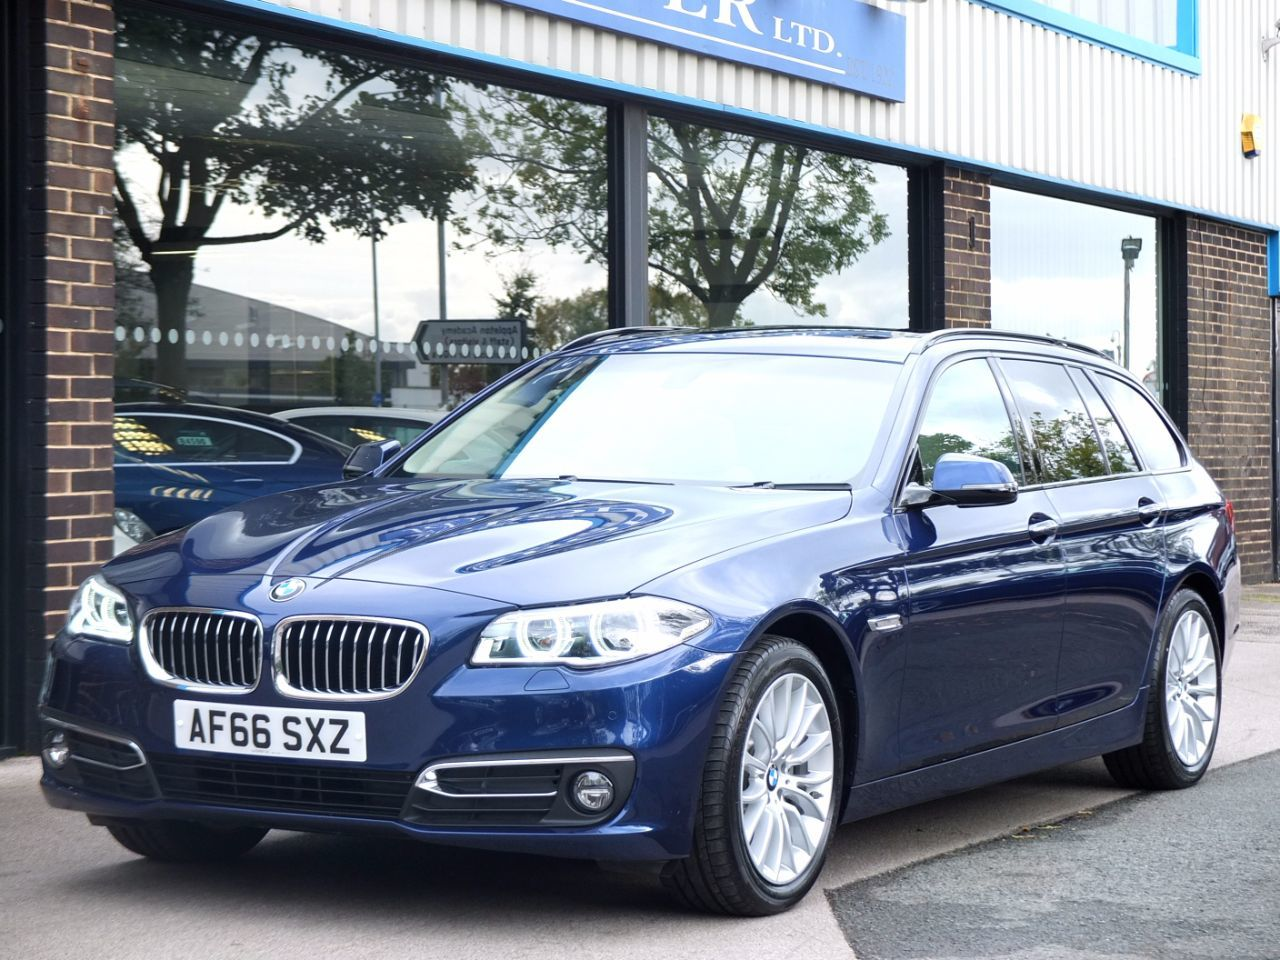 BMW 5 Series 2.0 520d Touring 190 ps Luxury Auto Estate Diesel Mediterranean Blue MetallicBMW 5 Series 2.0 520d Touring 190 ps Luxury Auto Estate Diesel Mediterranean Blue Metallic at fa Roper Ltd Bradford